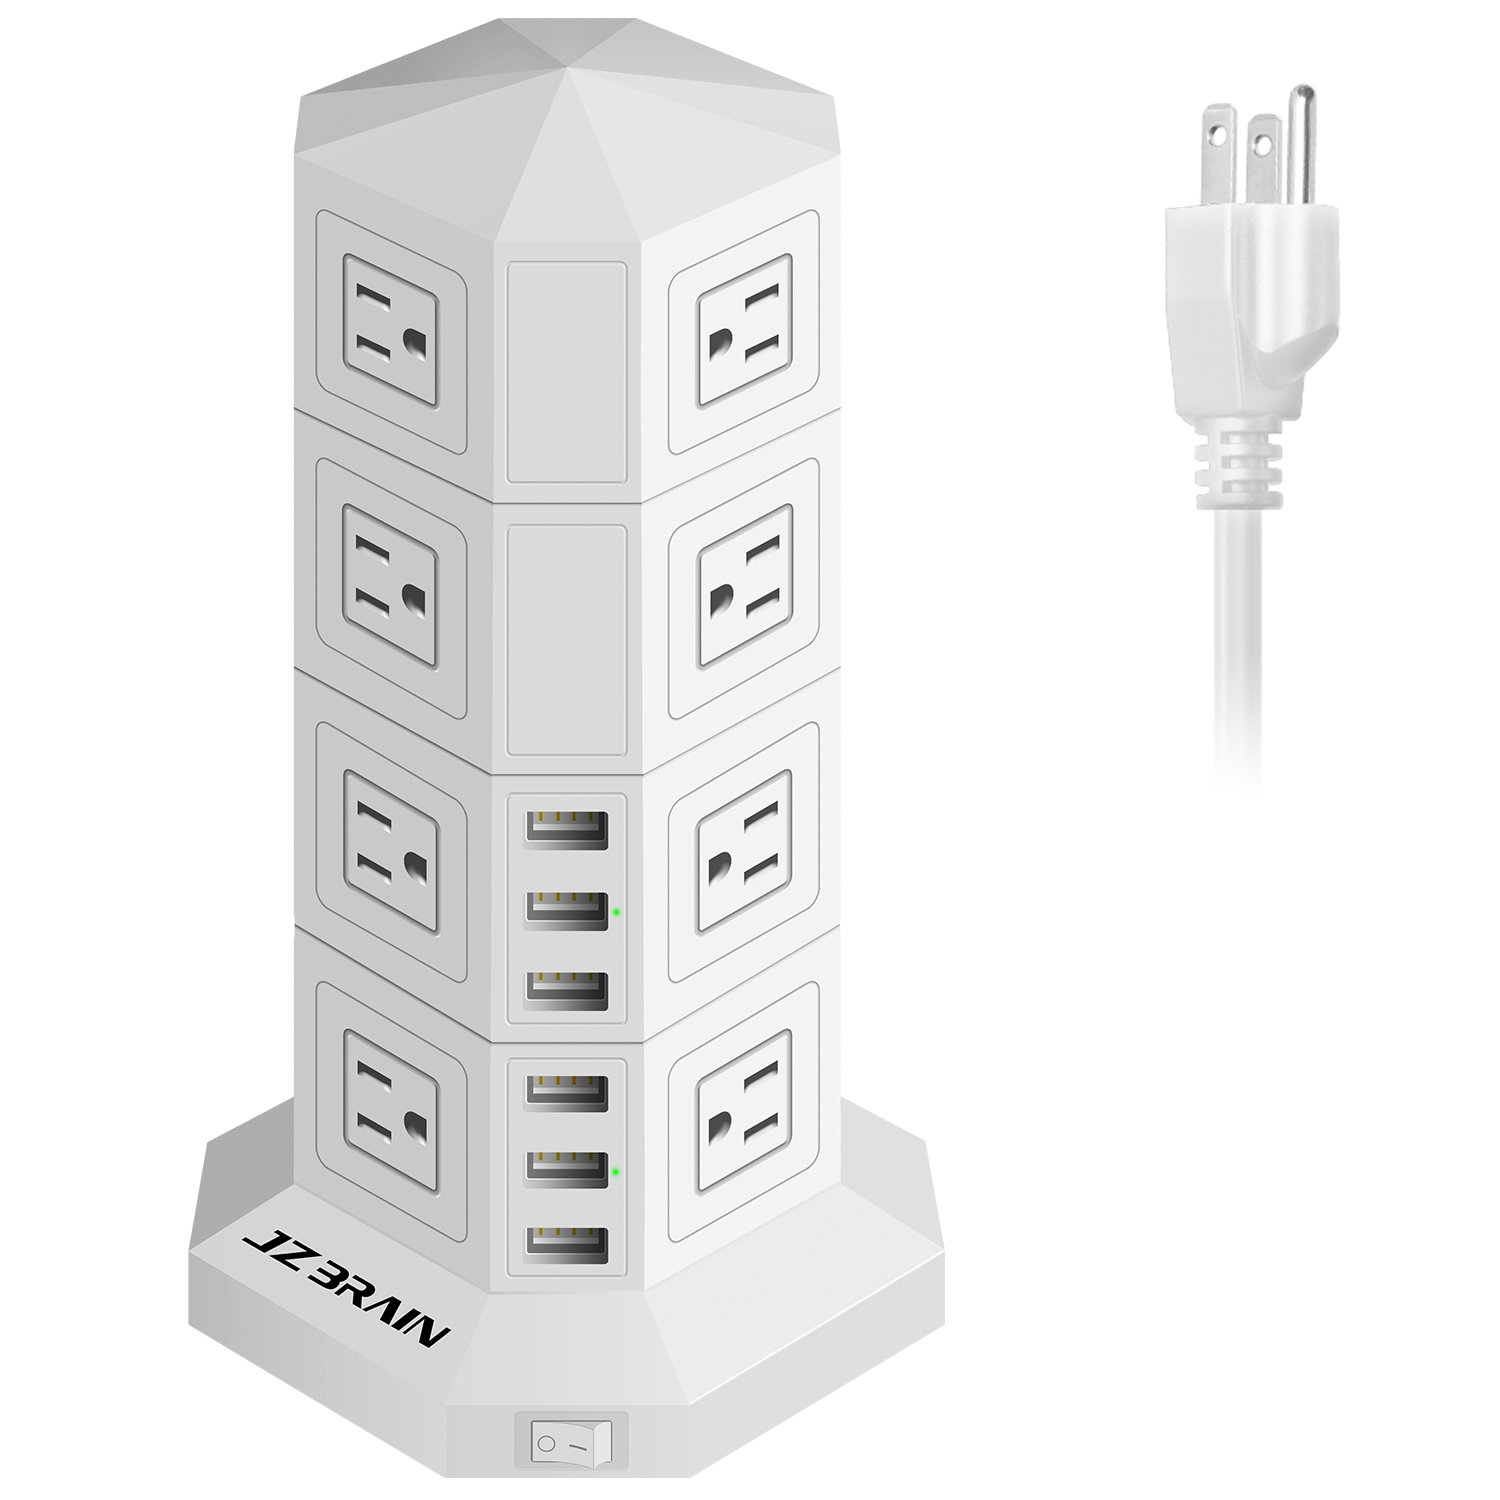 JZBRAIN 16-Outlet 6-USB Tower Surge Protector Power Strip Power Socket Strip 9.8ft Cord (White)